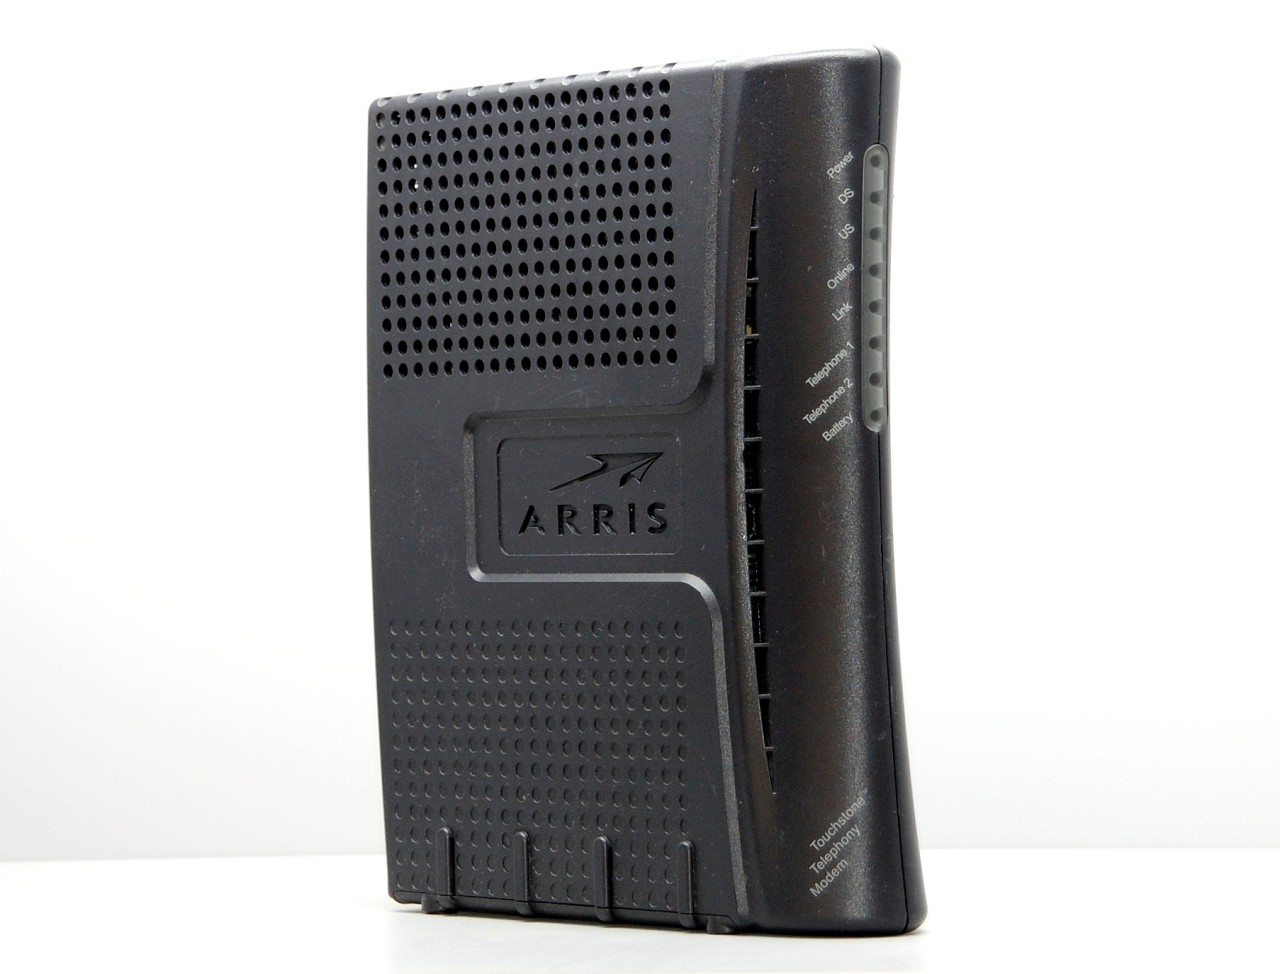 Arris Tm602g Twc Telephone Cable Modem Battery Twc